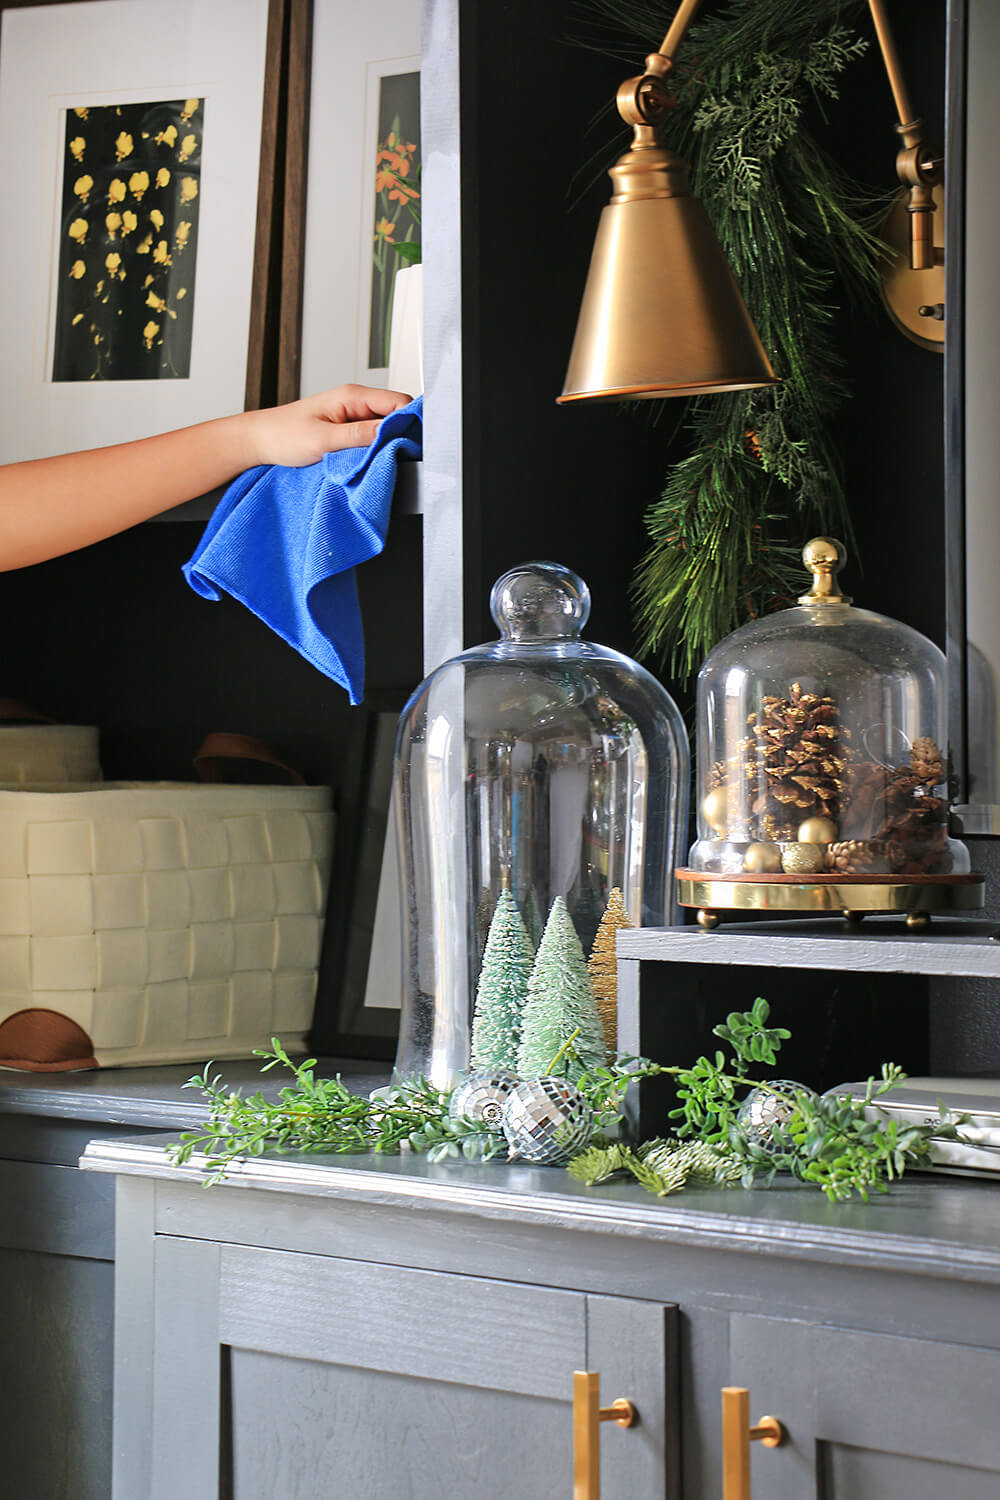 Cleaning-a-shelf-with-holiday-decor